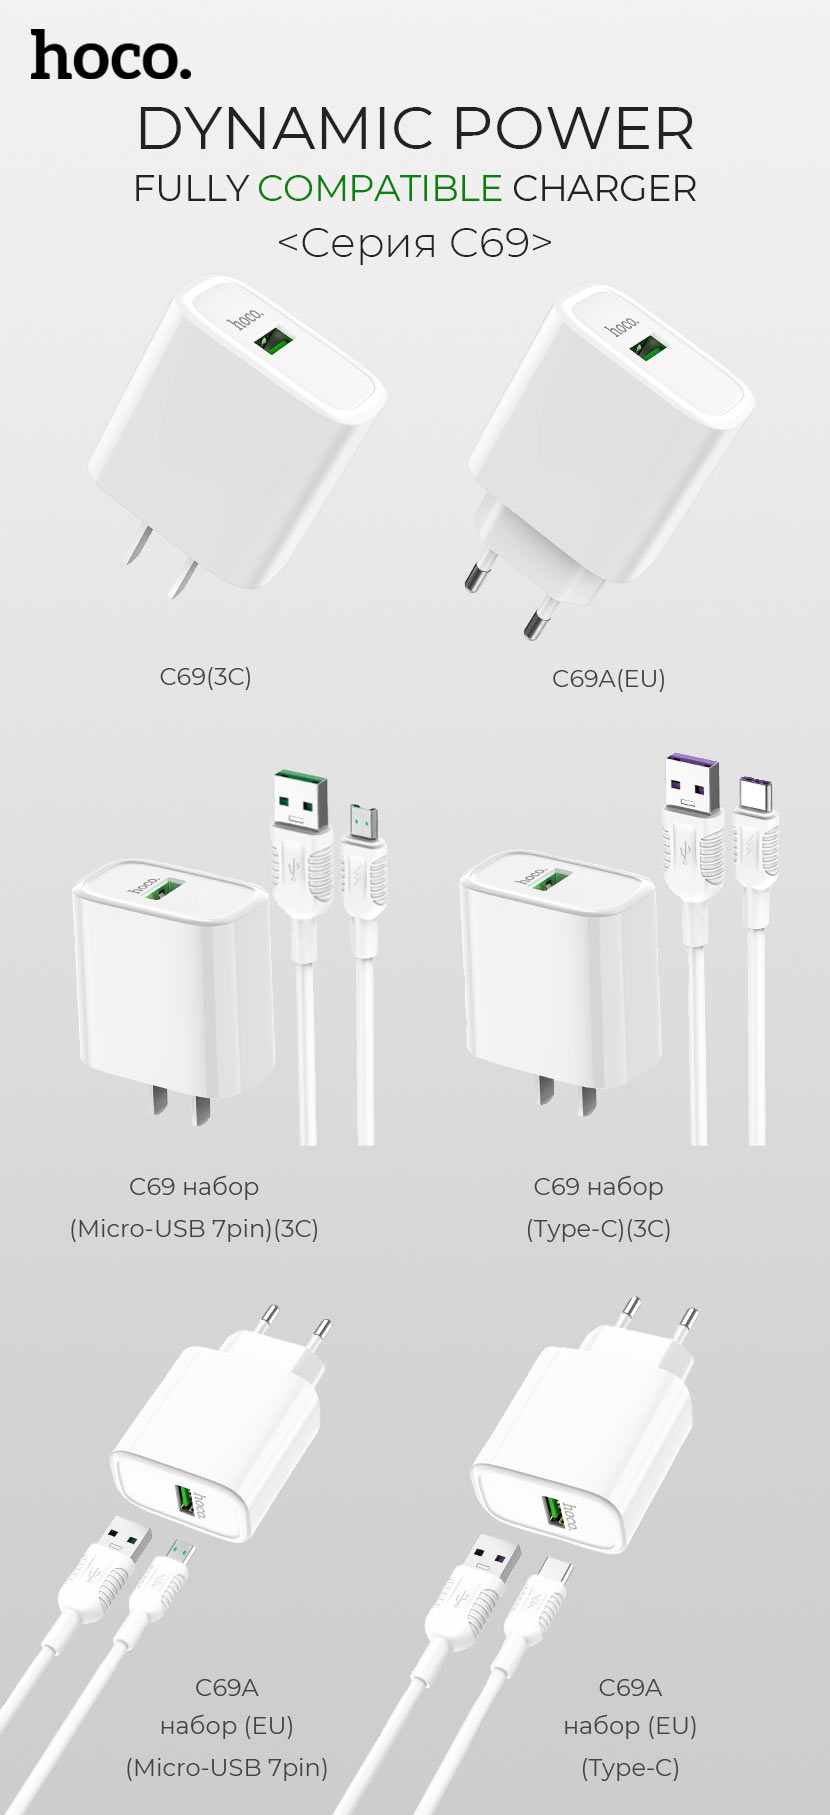 hoco news c69 dynamic power fully compatible charger set ru